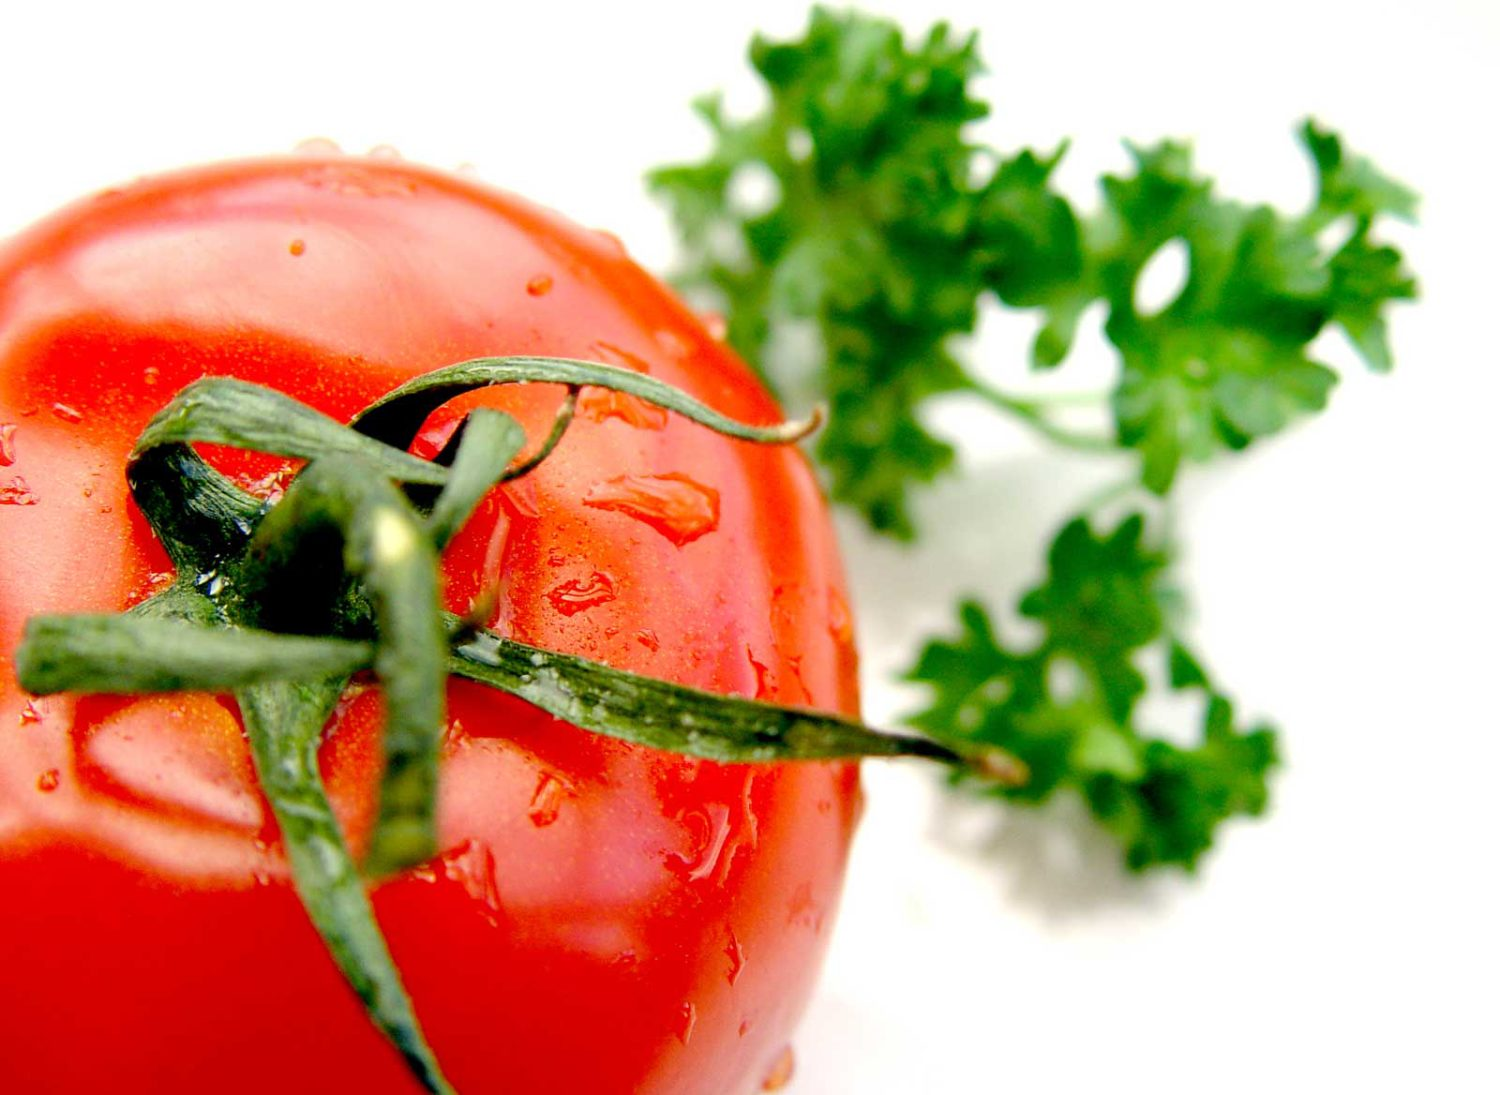 cropped-tomato_and_parsley_1600x1200-1.jpg